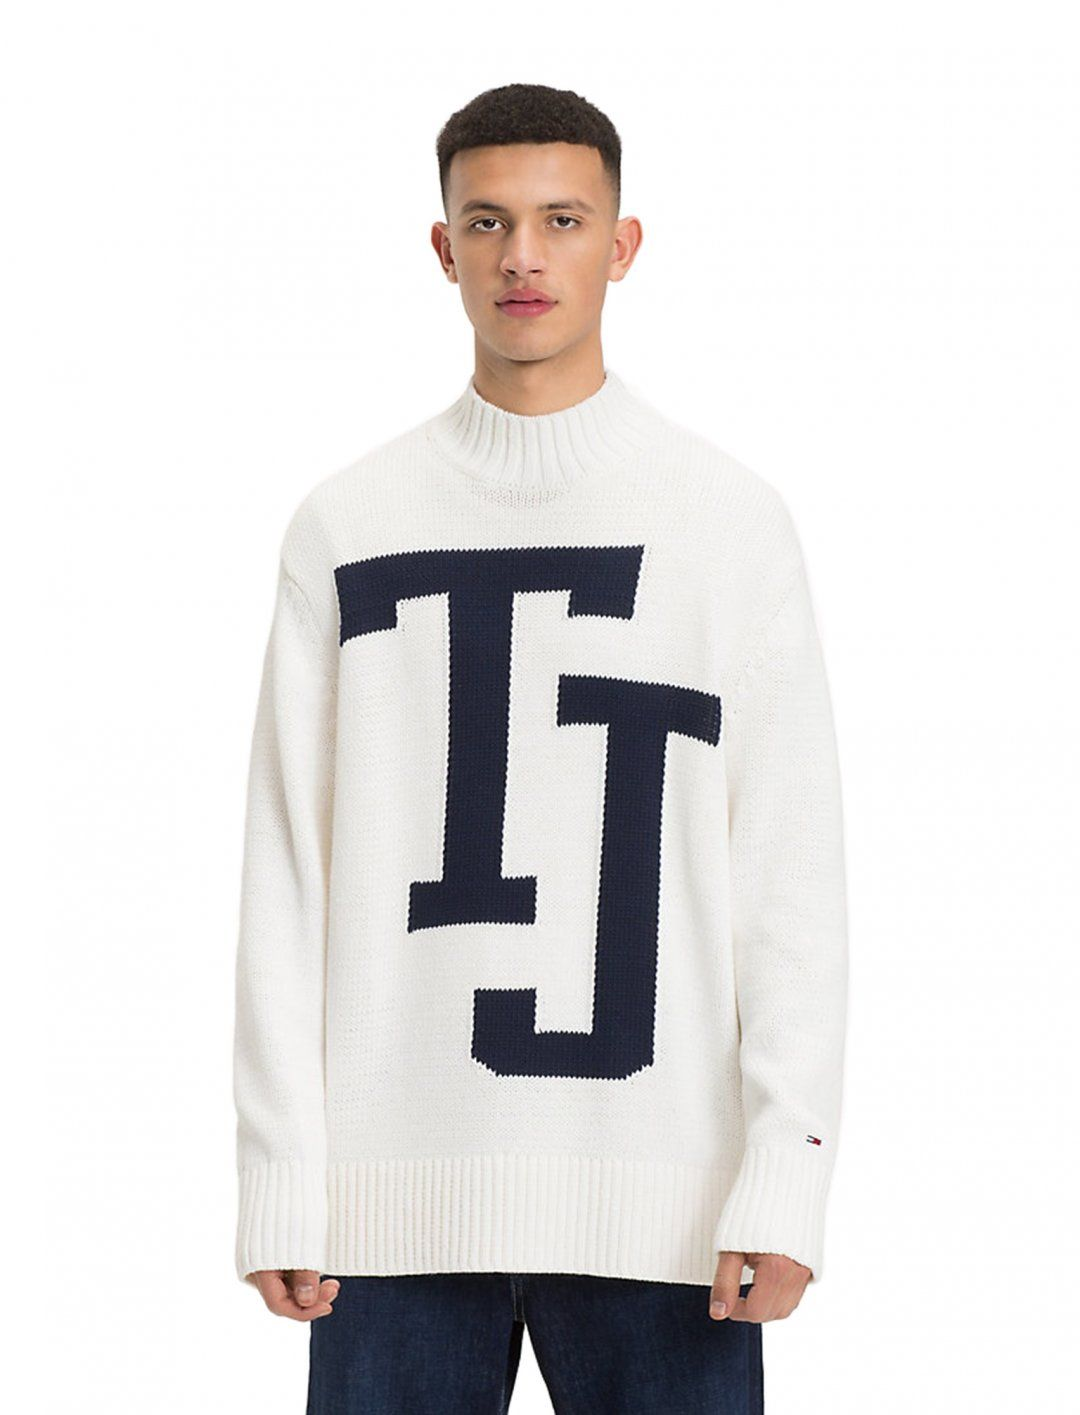 bd4bcfd3ebc Knitted Jumper, In White, With Tommy Jeans Logo from Tommy Hilfiger ...